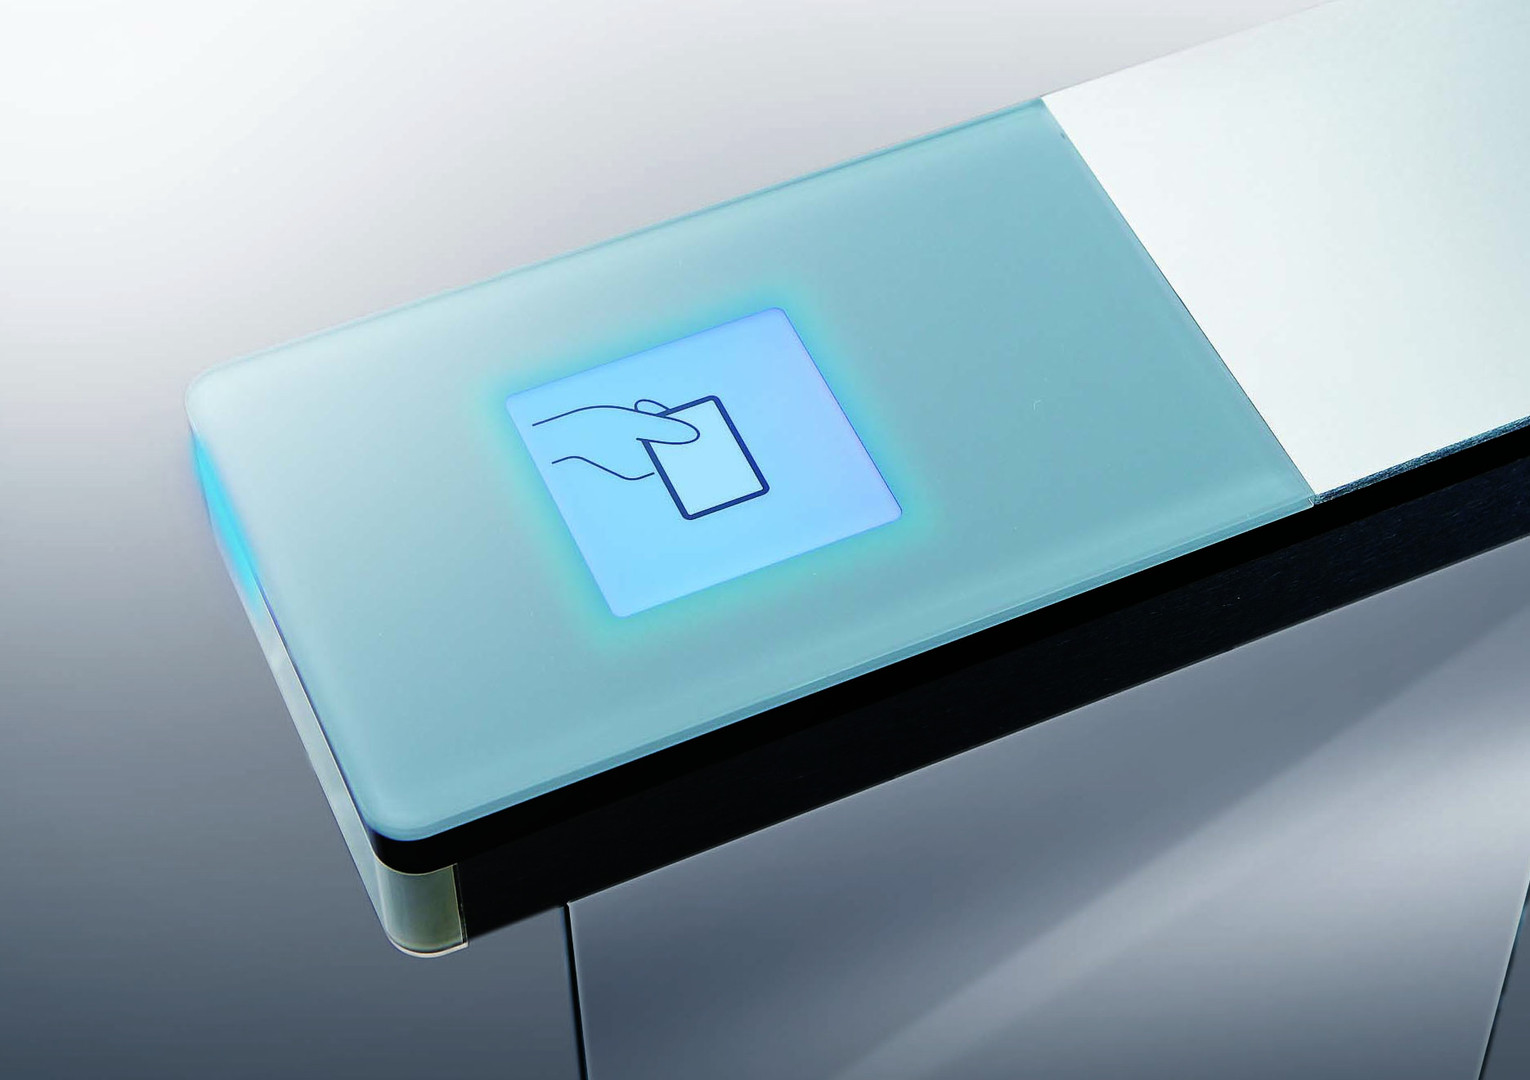 Large card reader specifications